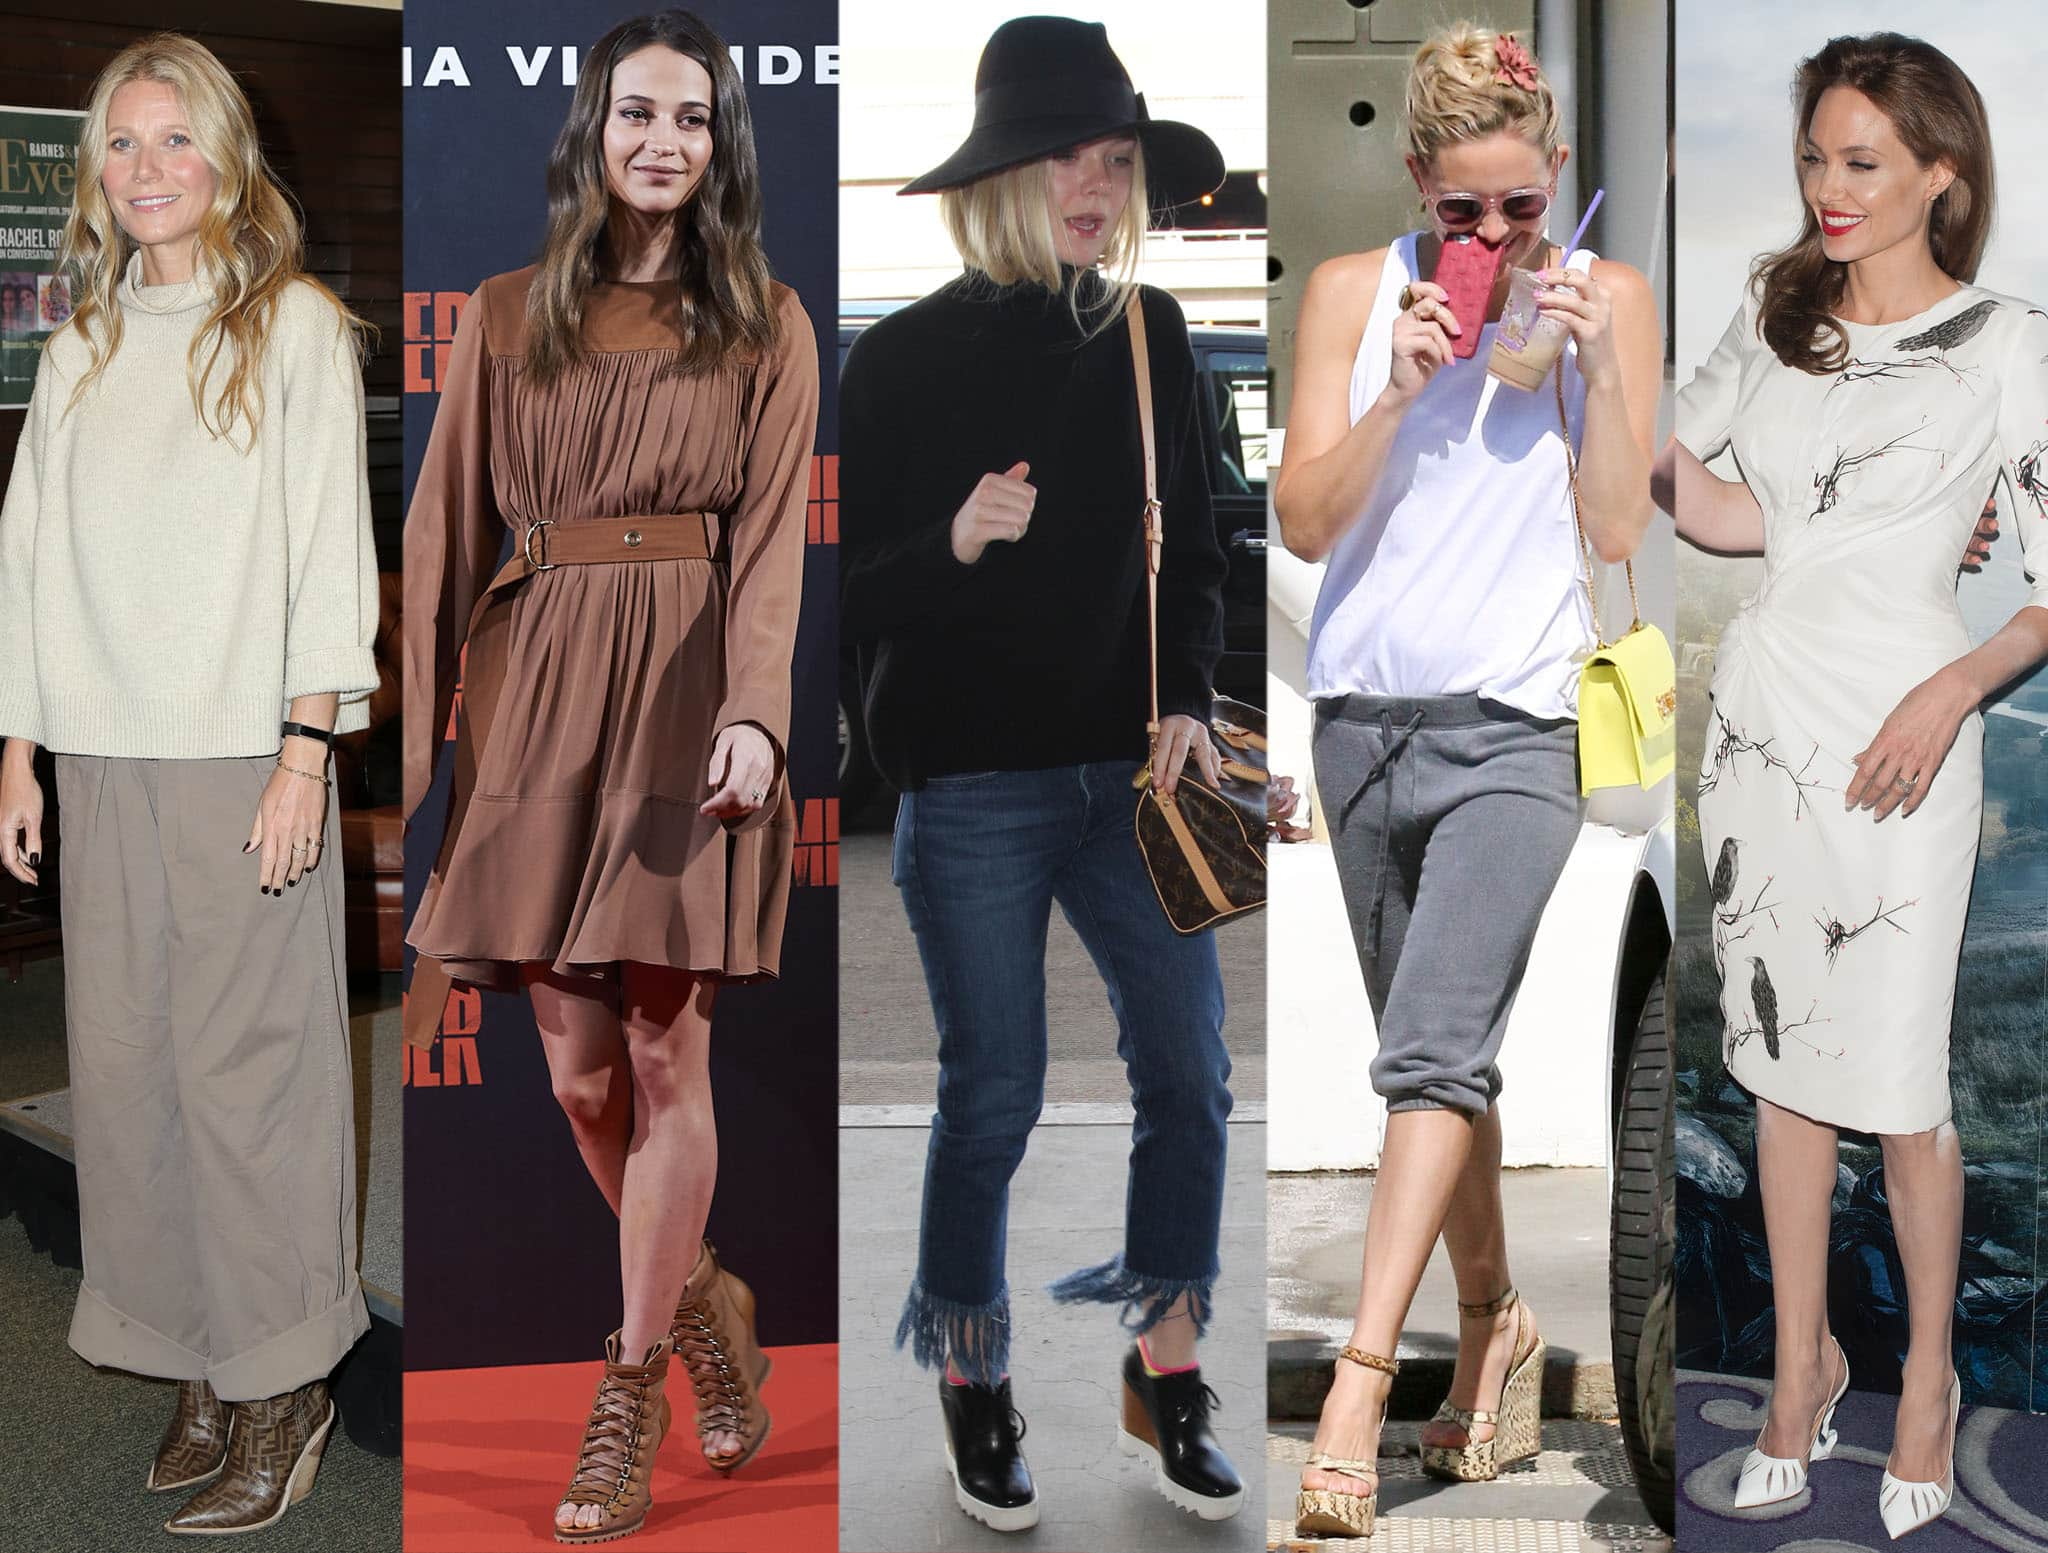 Gwyneth Paltrow, Alicia Vikander, Elle Fanning, Kate Hudson, and Angelina Jolie wear different styles of wedge shoes